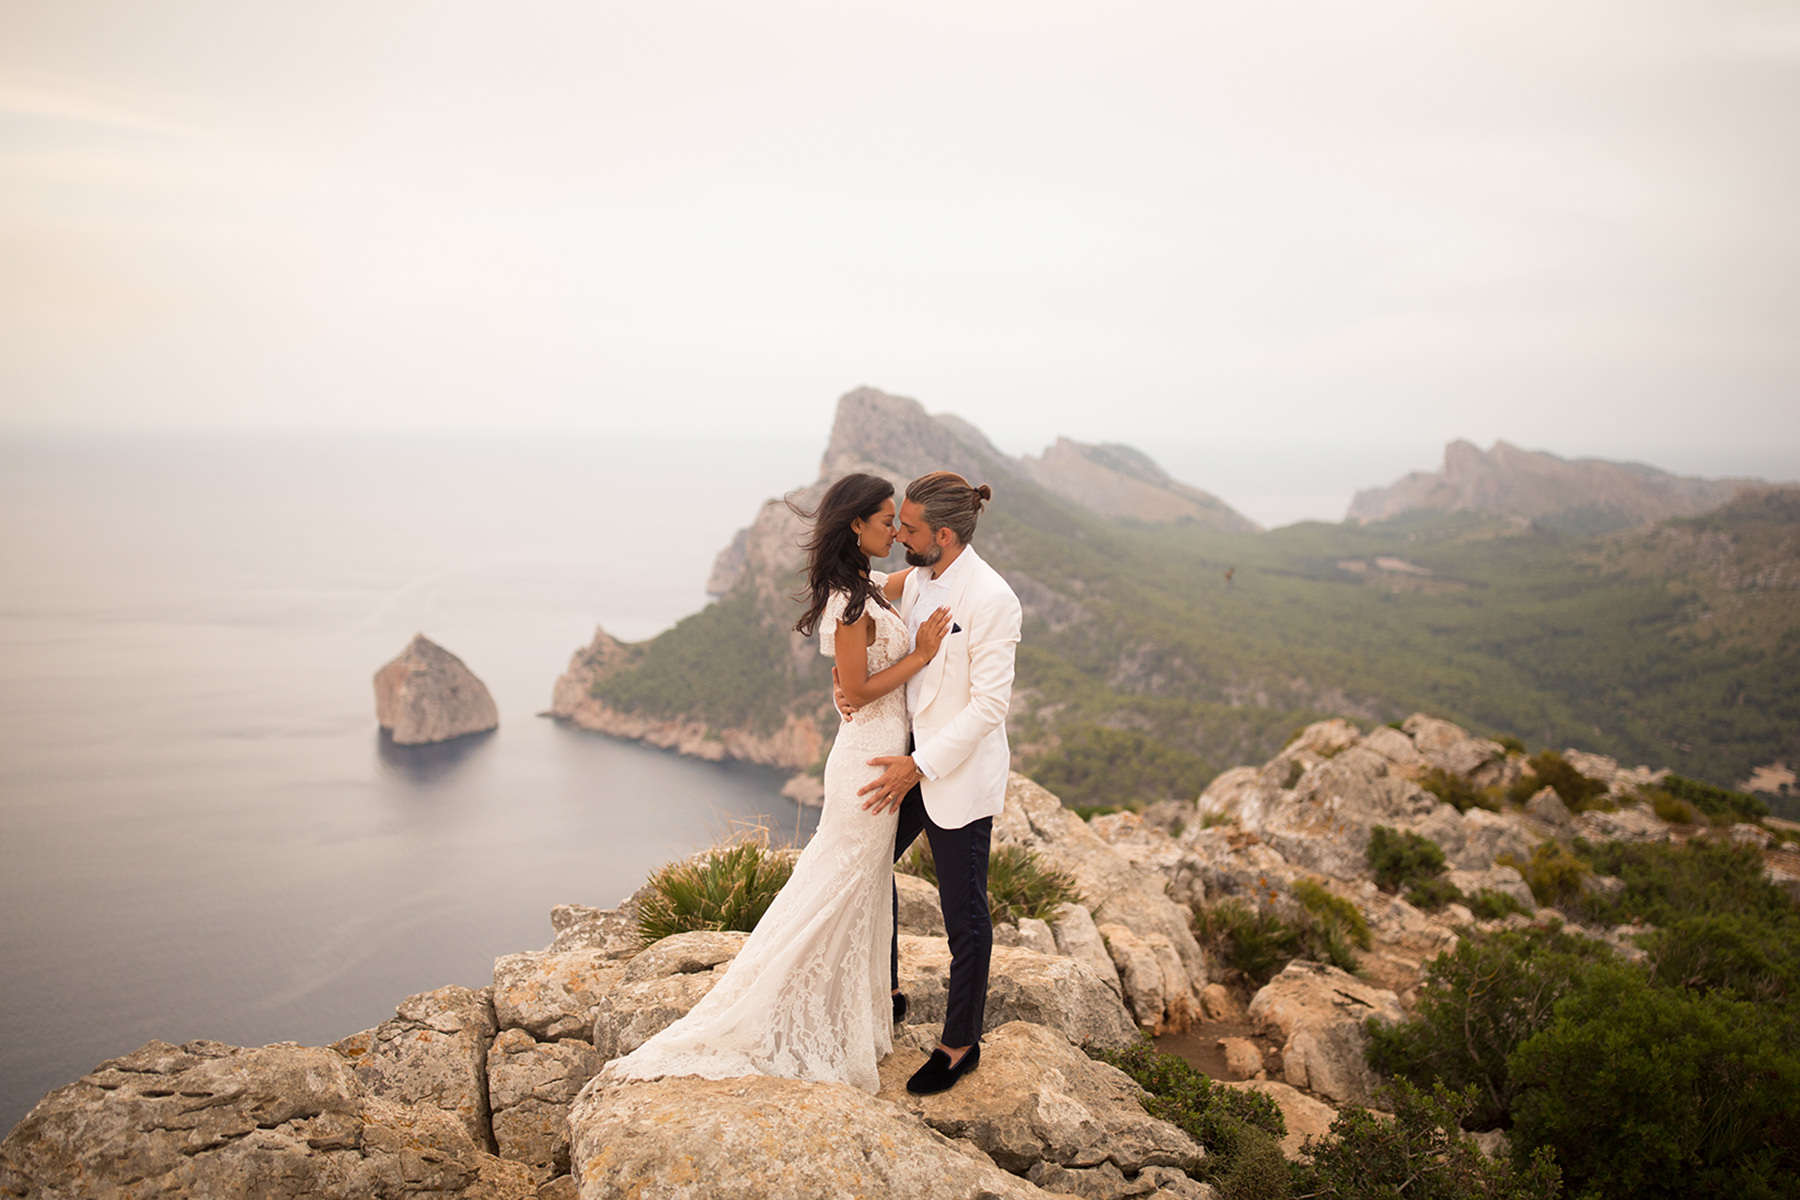 A wedding couple is holding each other and standing on top of a cliff next to the ocean.